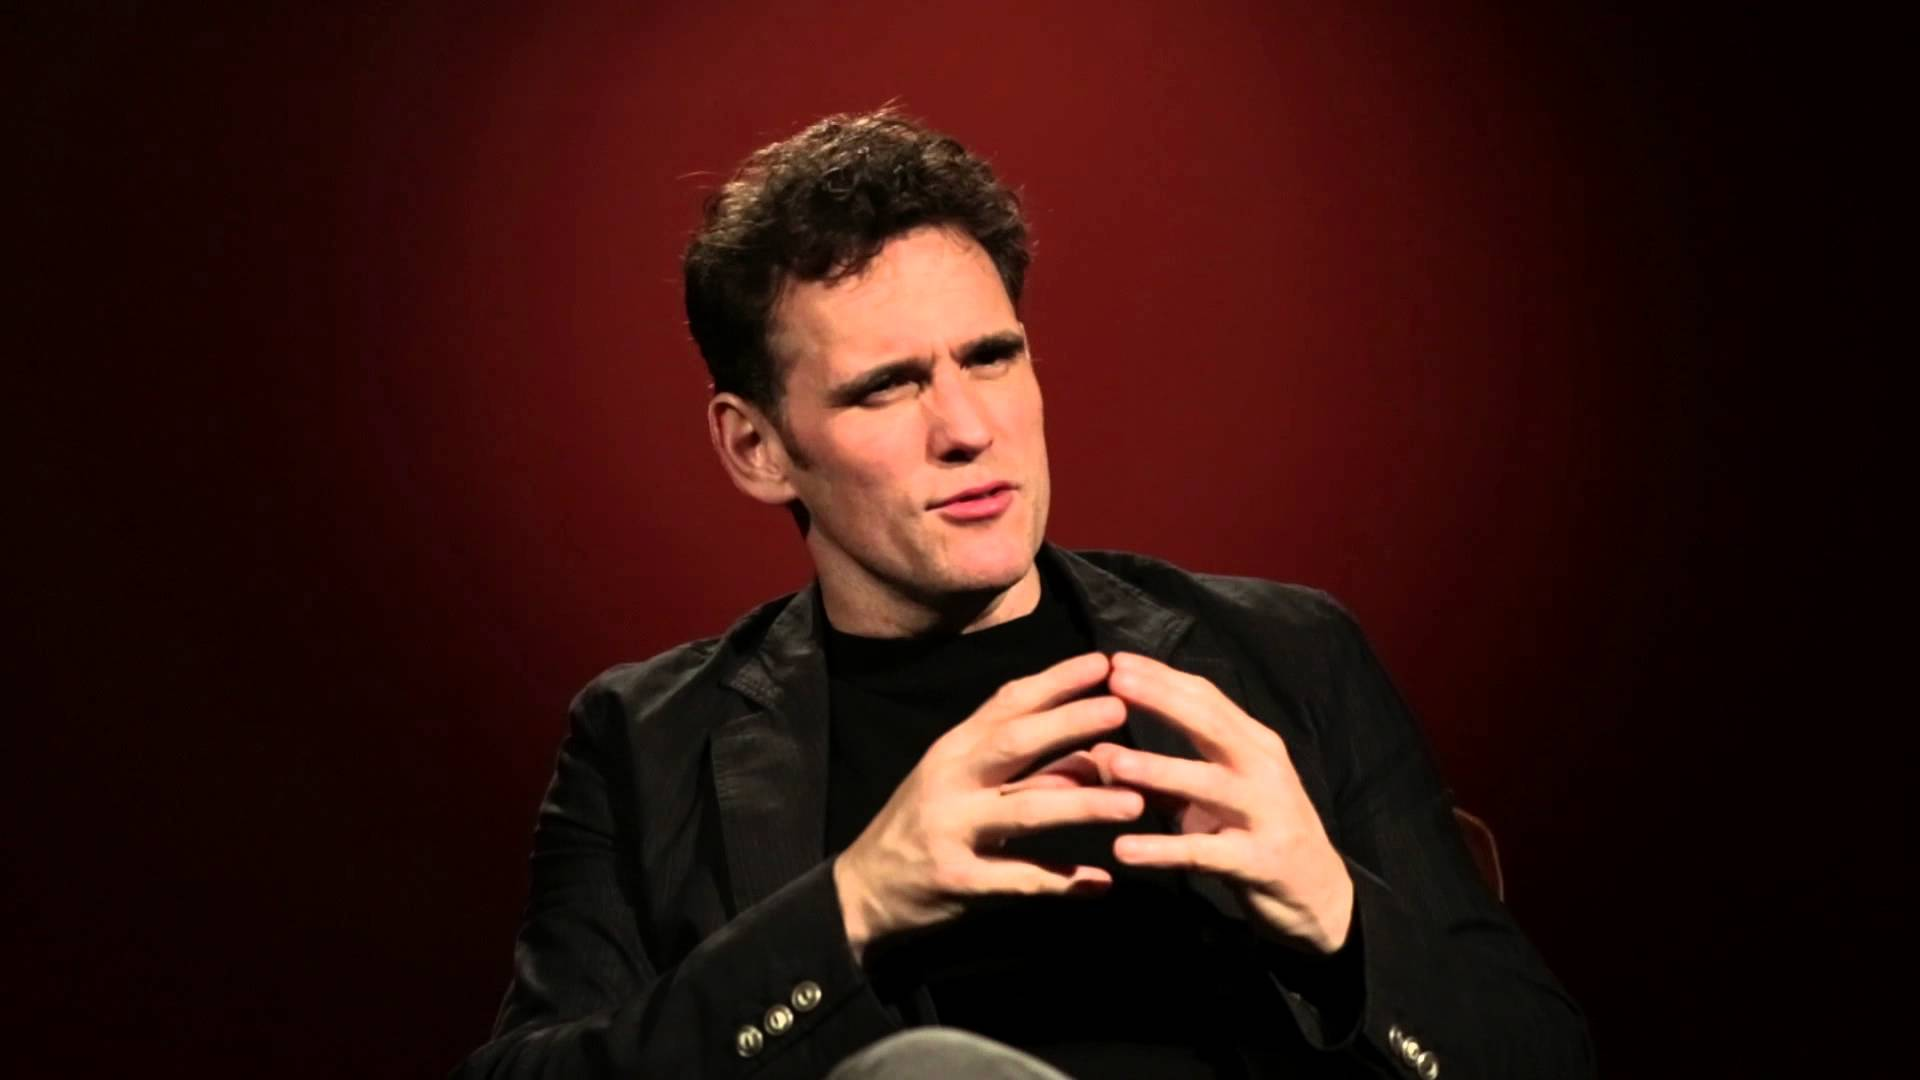 Matt Dillon Widescreen for desktop